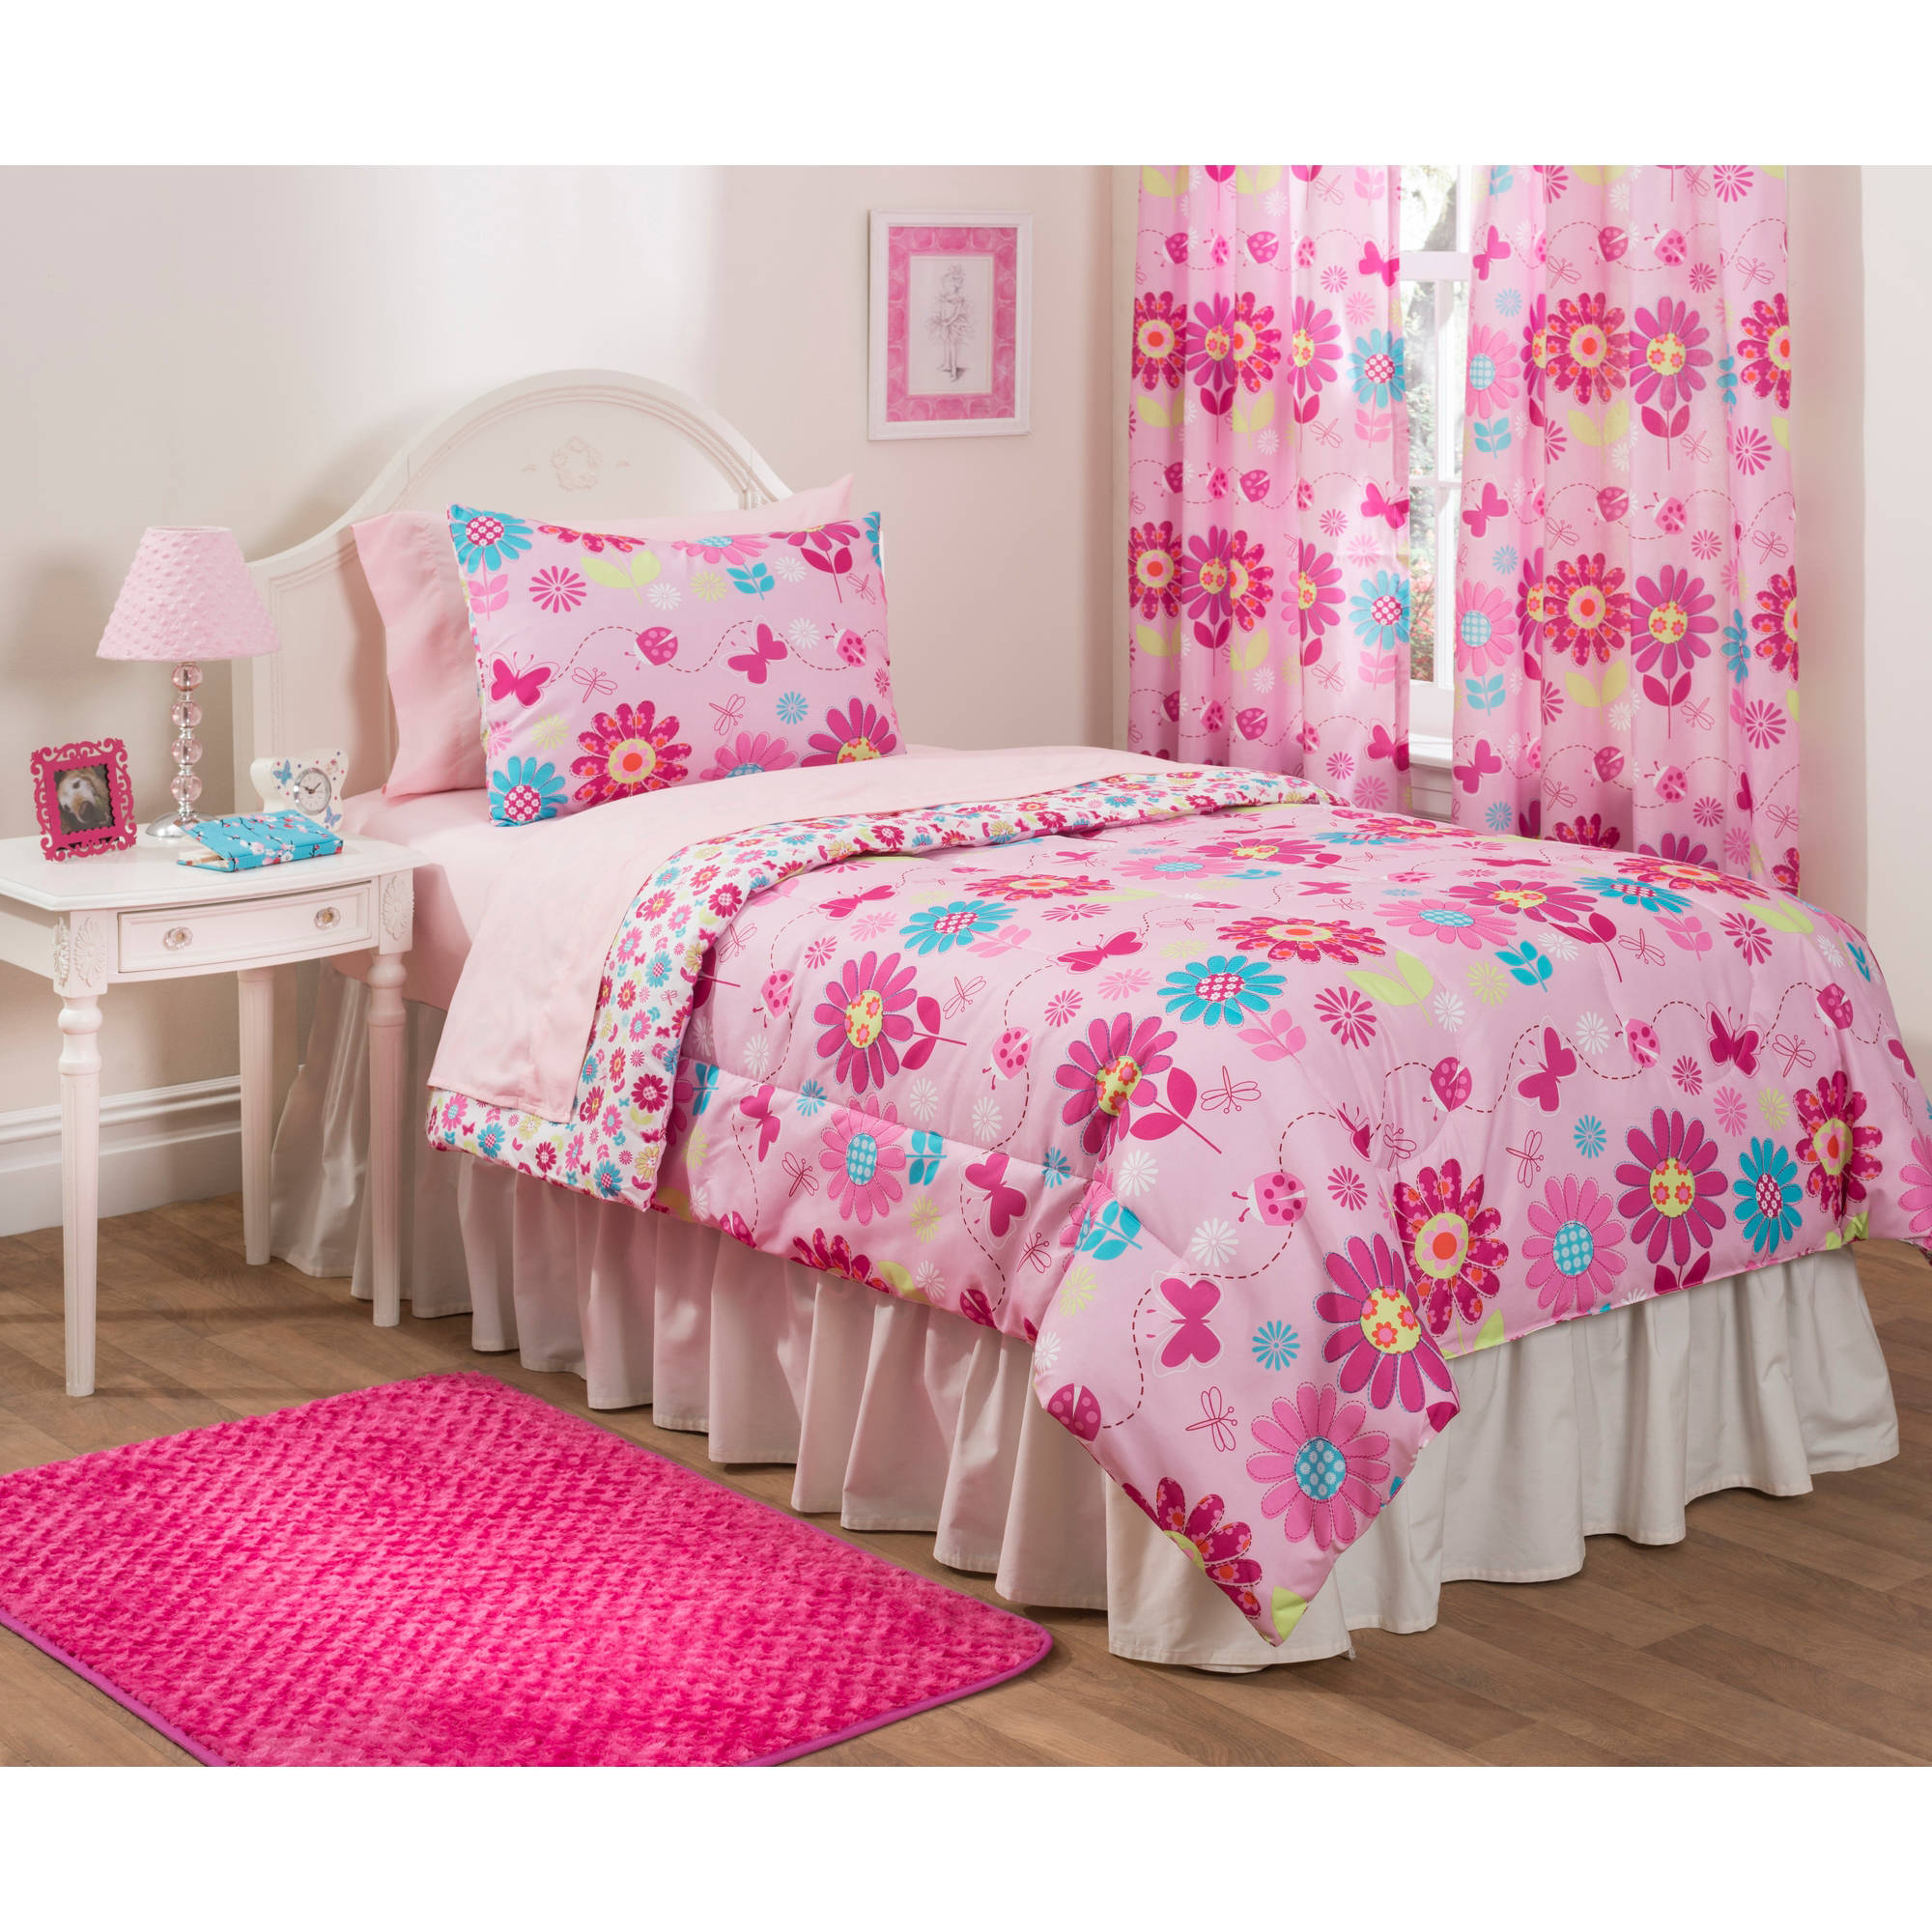 Mainstays Kids Daisy Floral Bed in a Bag Bedding Set Walmart